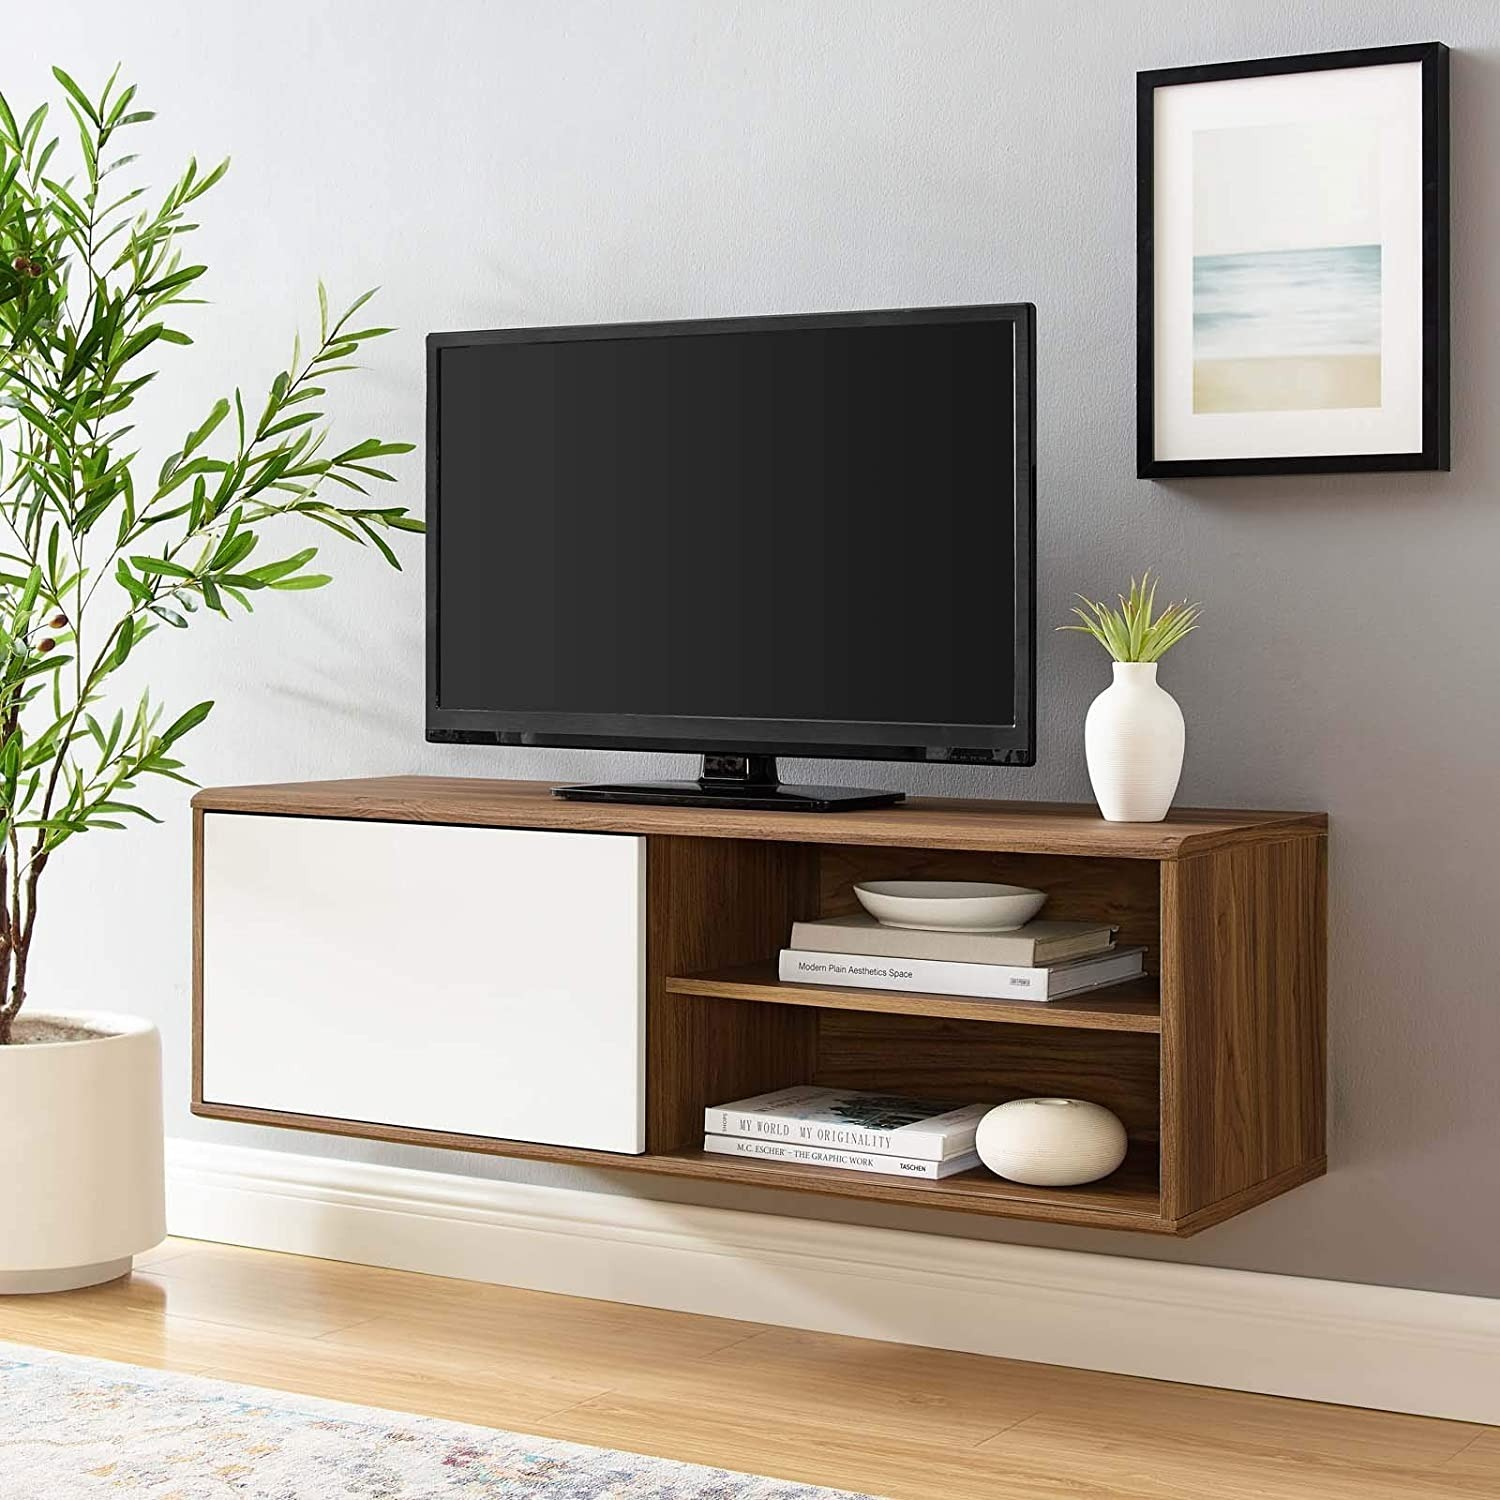 Mid-Century Style Wall Mount TV Stand In Walnut - image-6